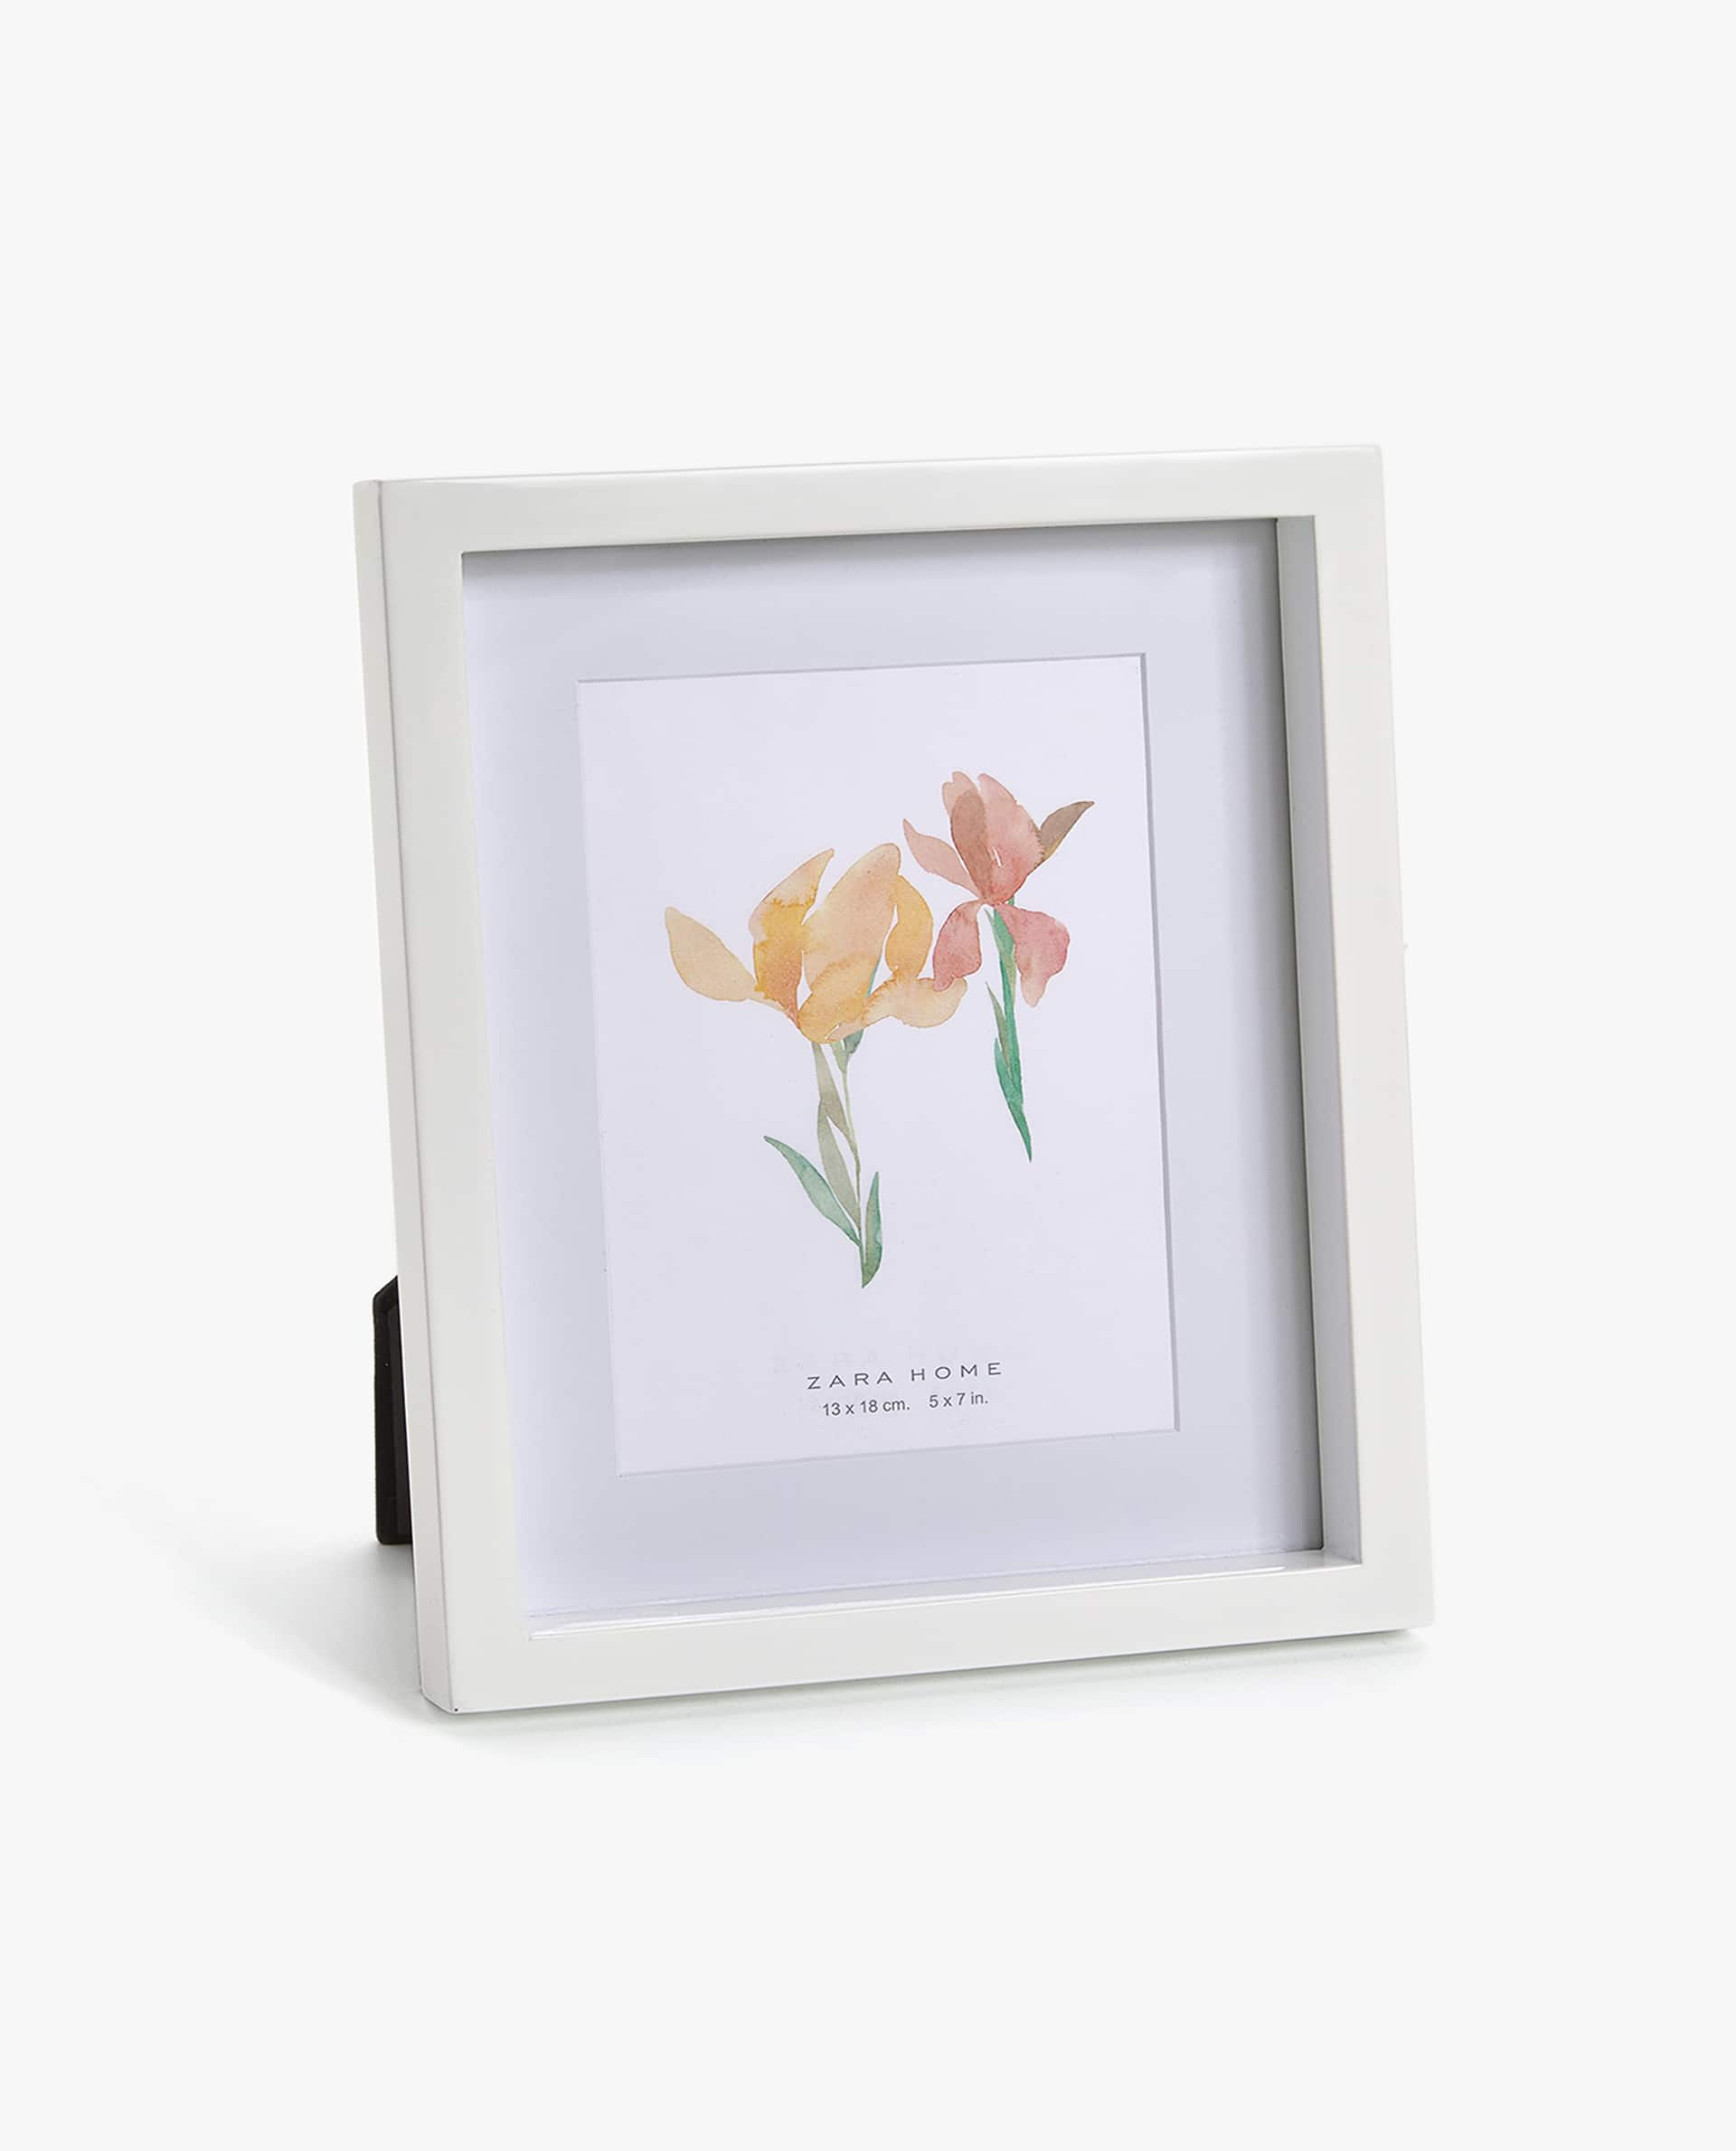 WHITE LACQUERED WOODEN FRAME - PHOTO SIZE 5x7 in. - PHOTO FRAMES ...